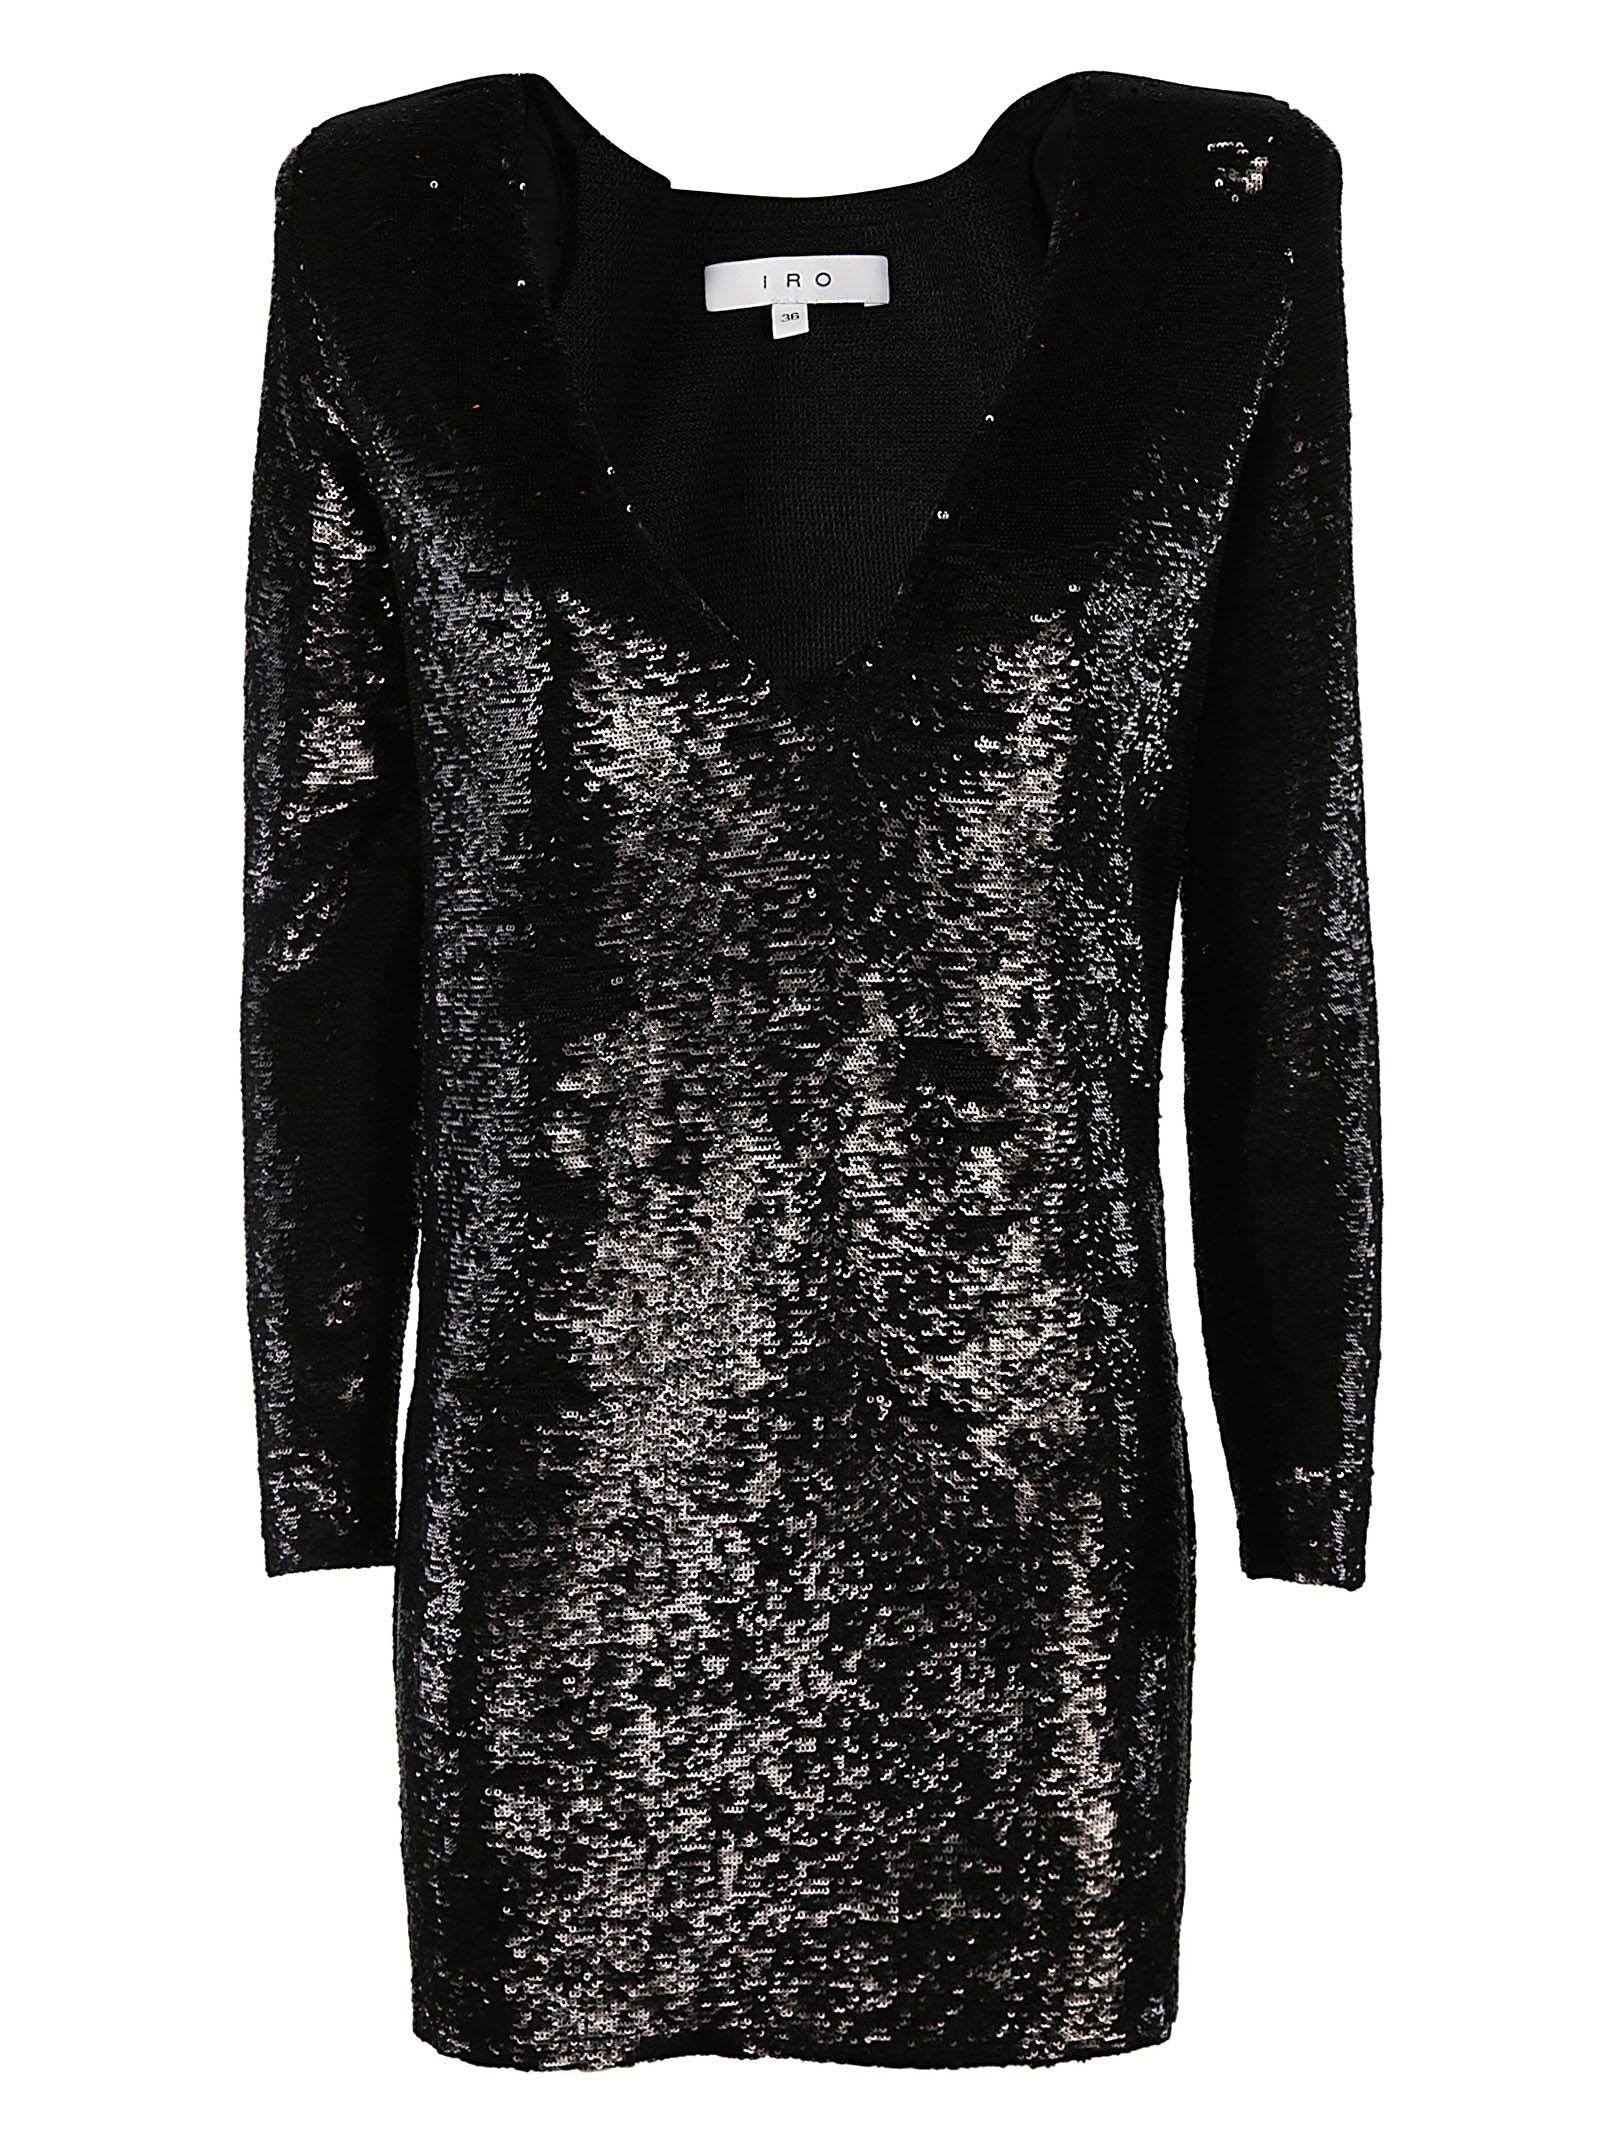 IRO Sequin Embellished Dress